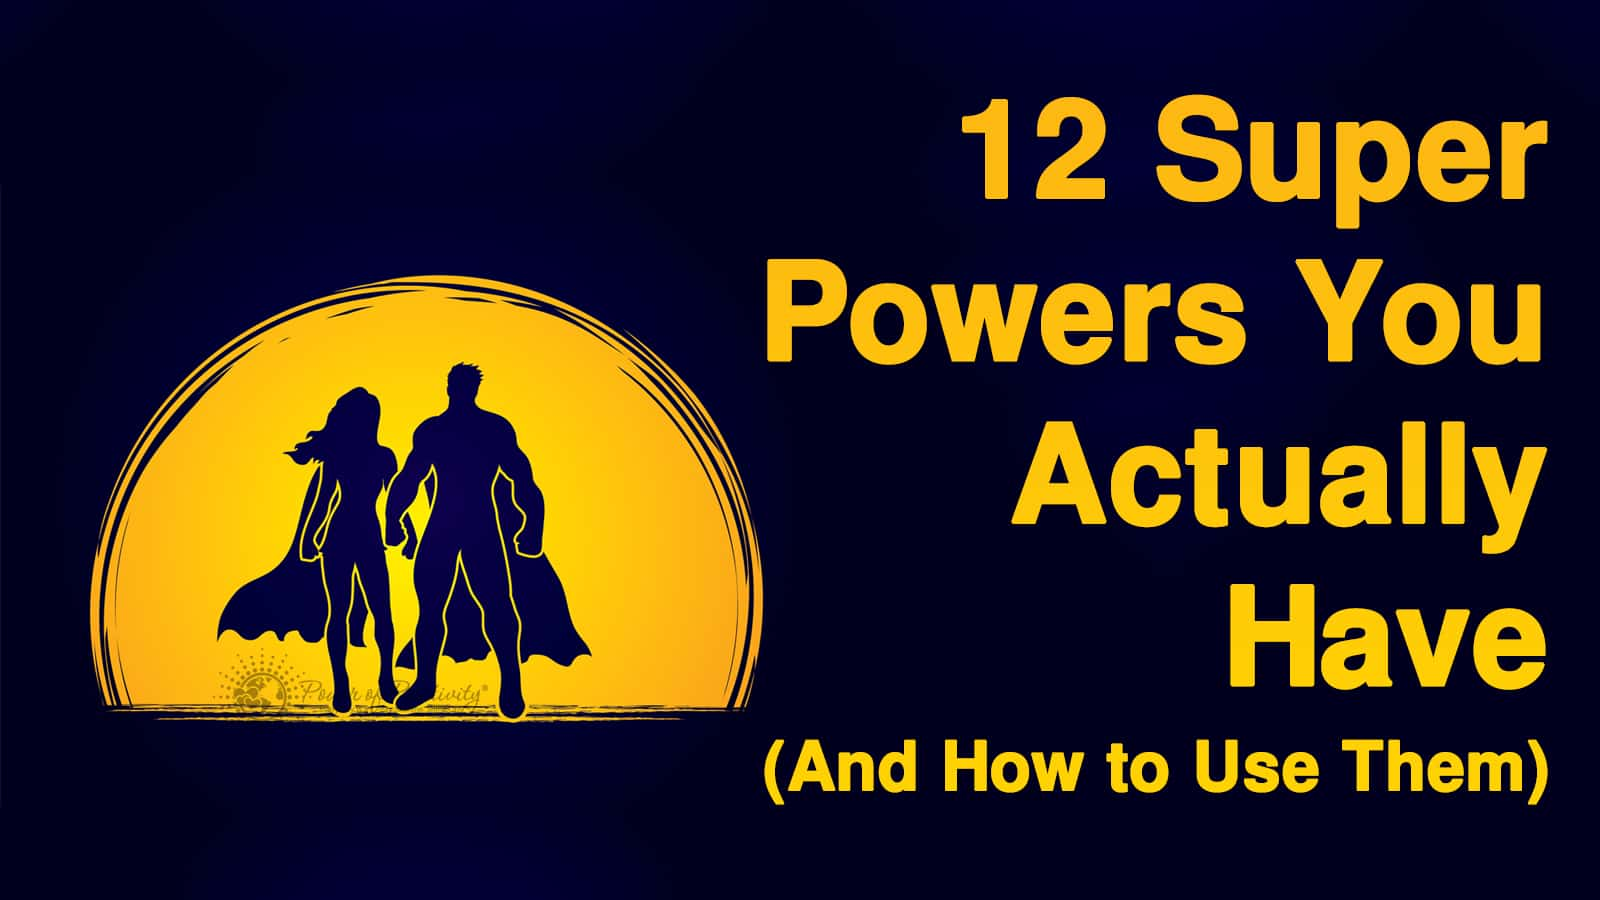 12 Super Powers You Actually Have (And How to Use Them)